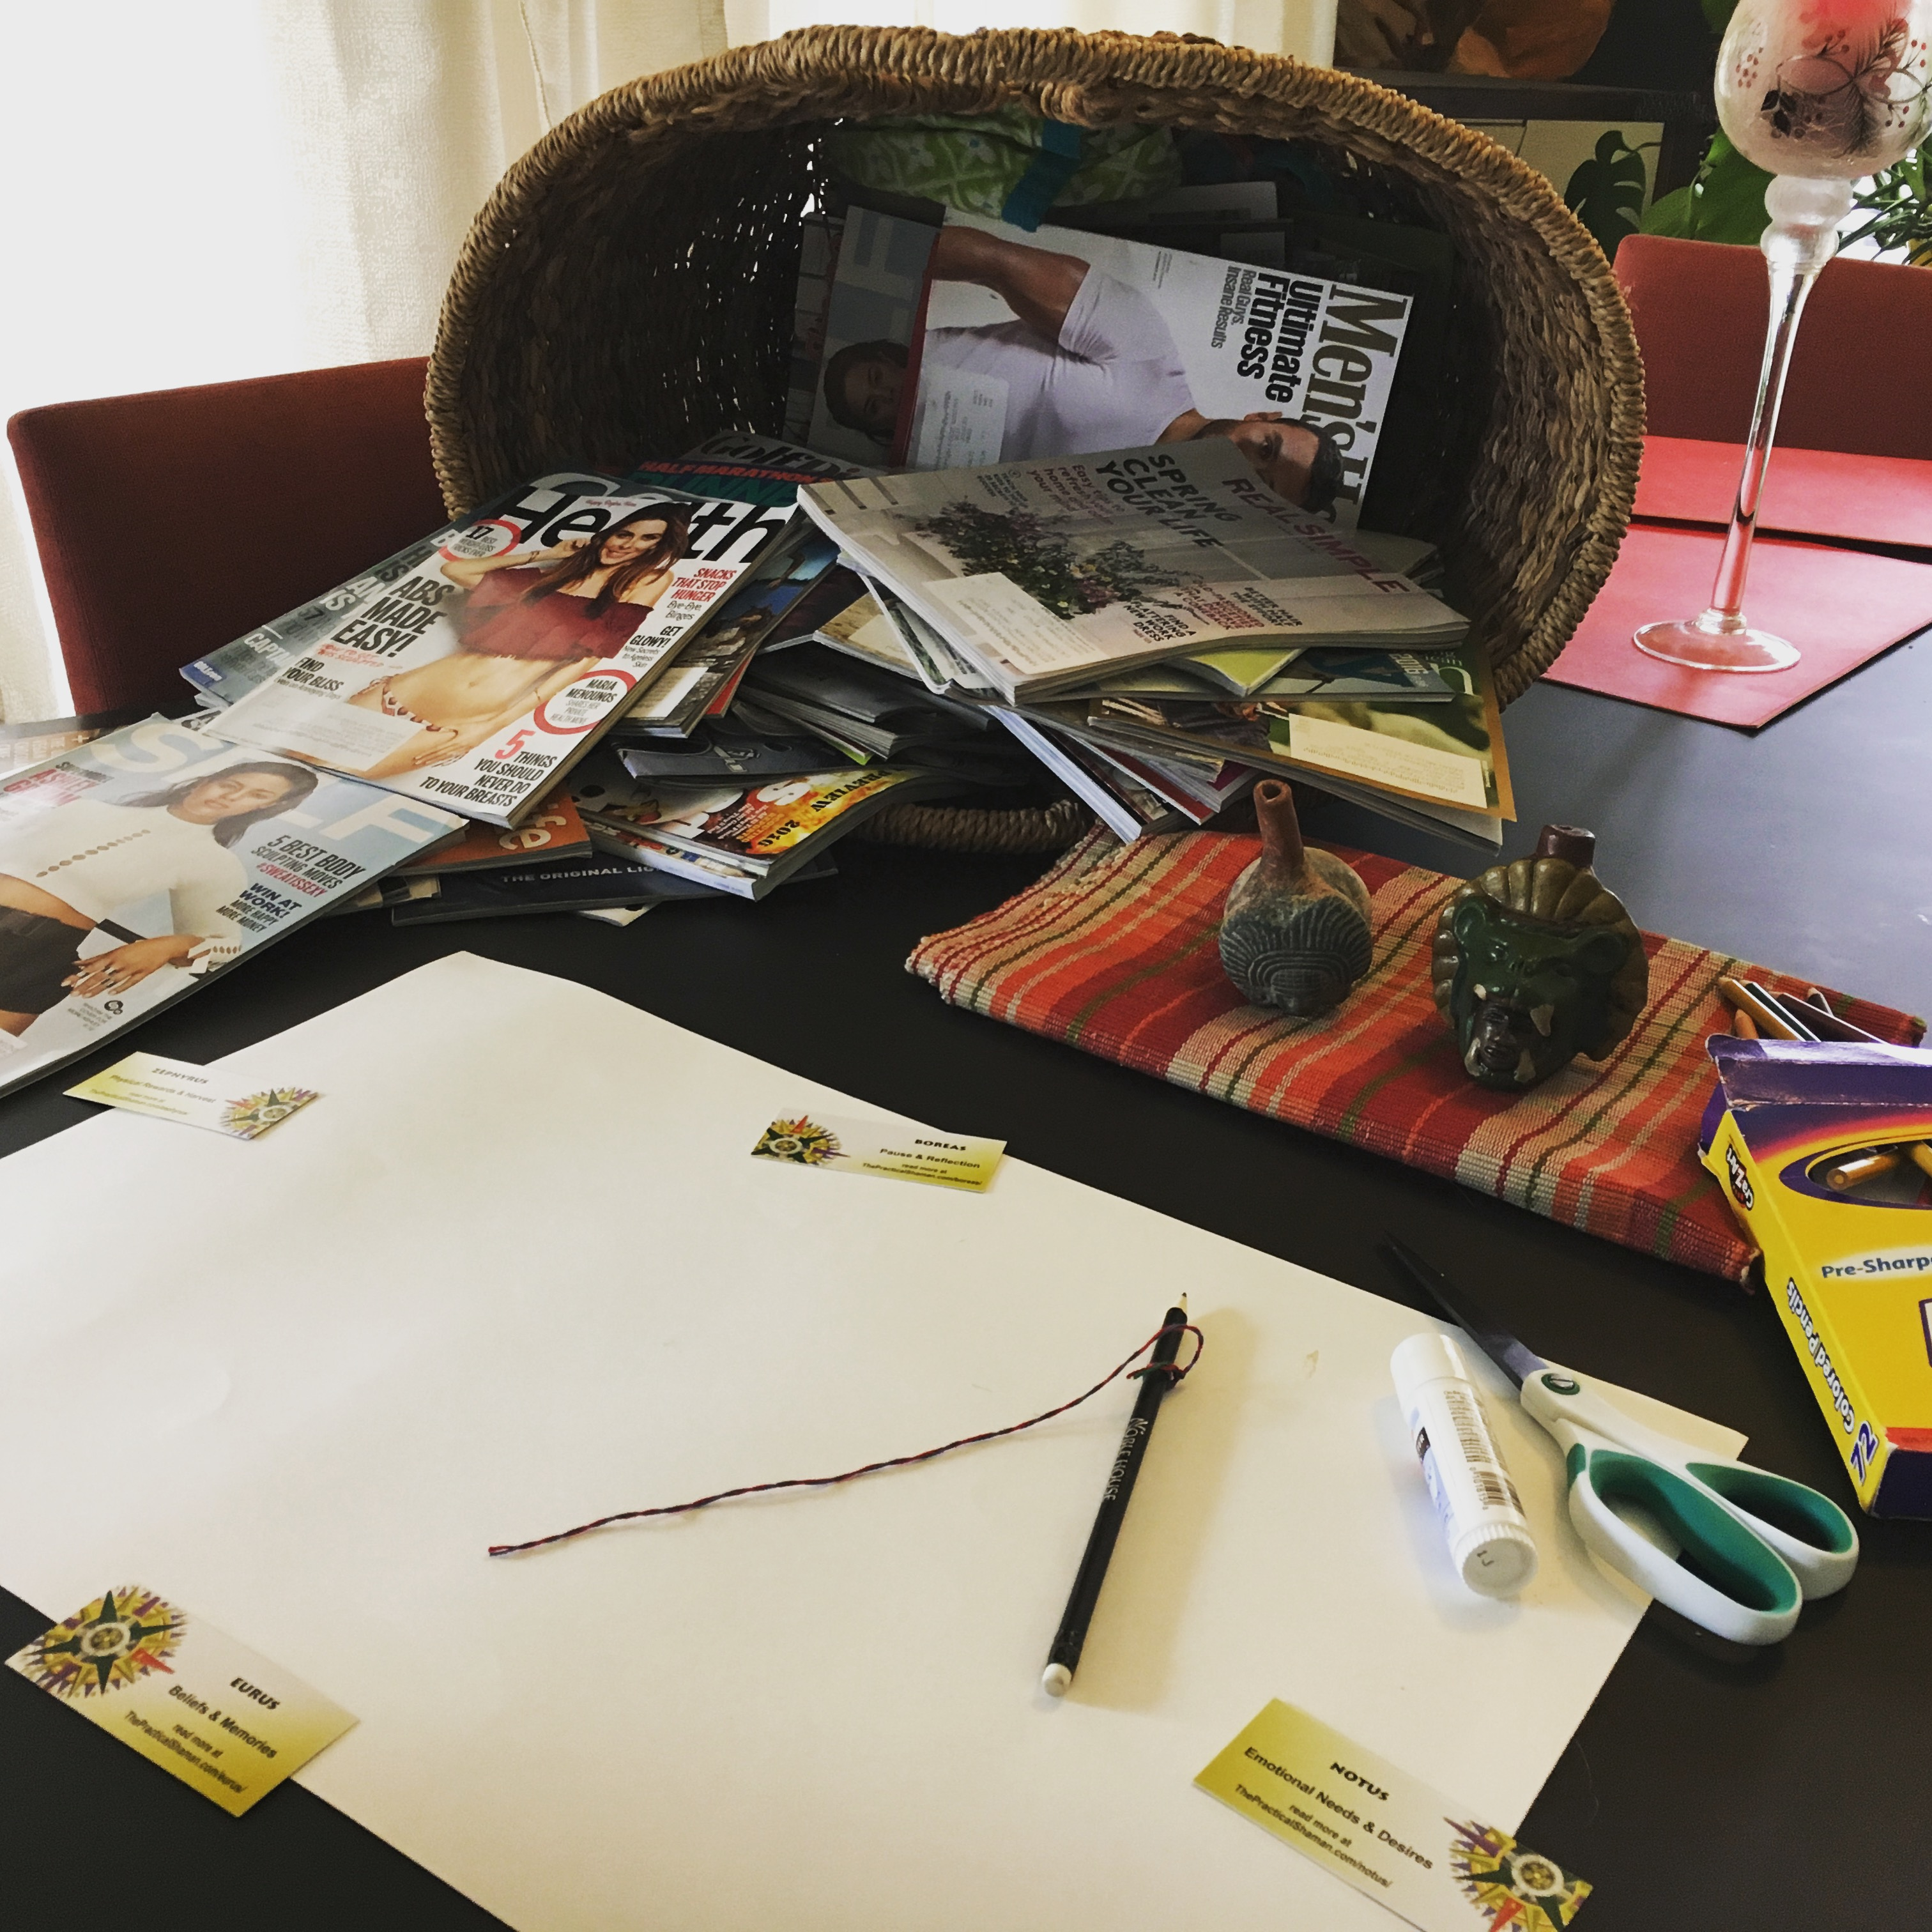 Vision Board Preparation Renee Baribeau